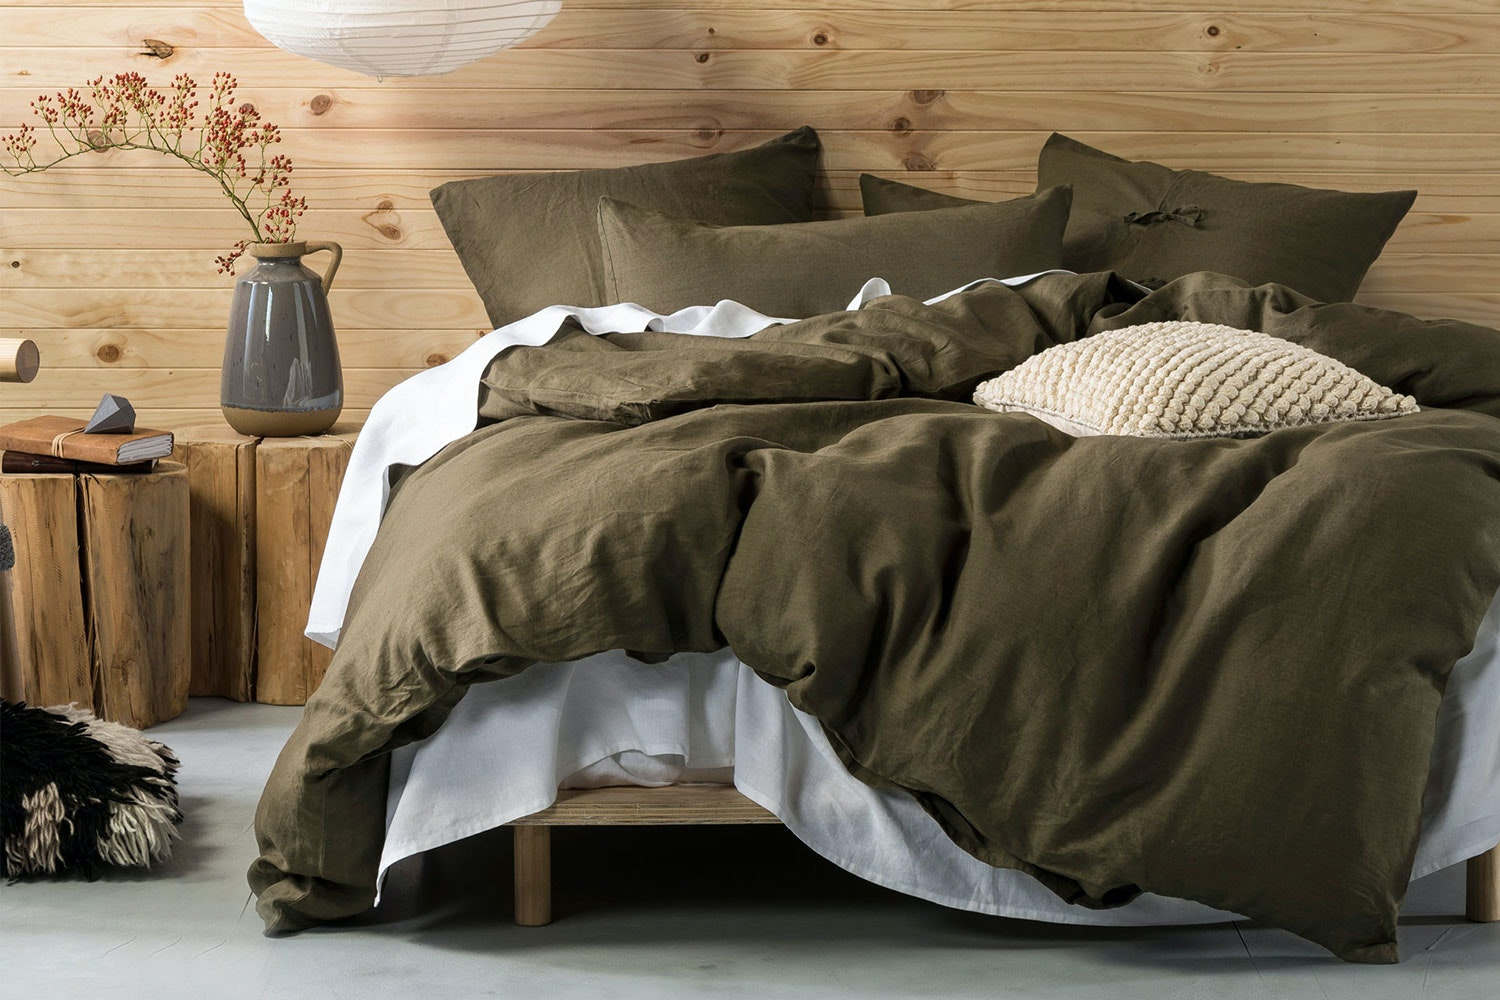 Nimes Olive Duvet Cover Set by Savona